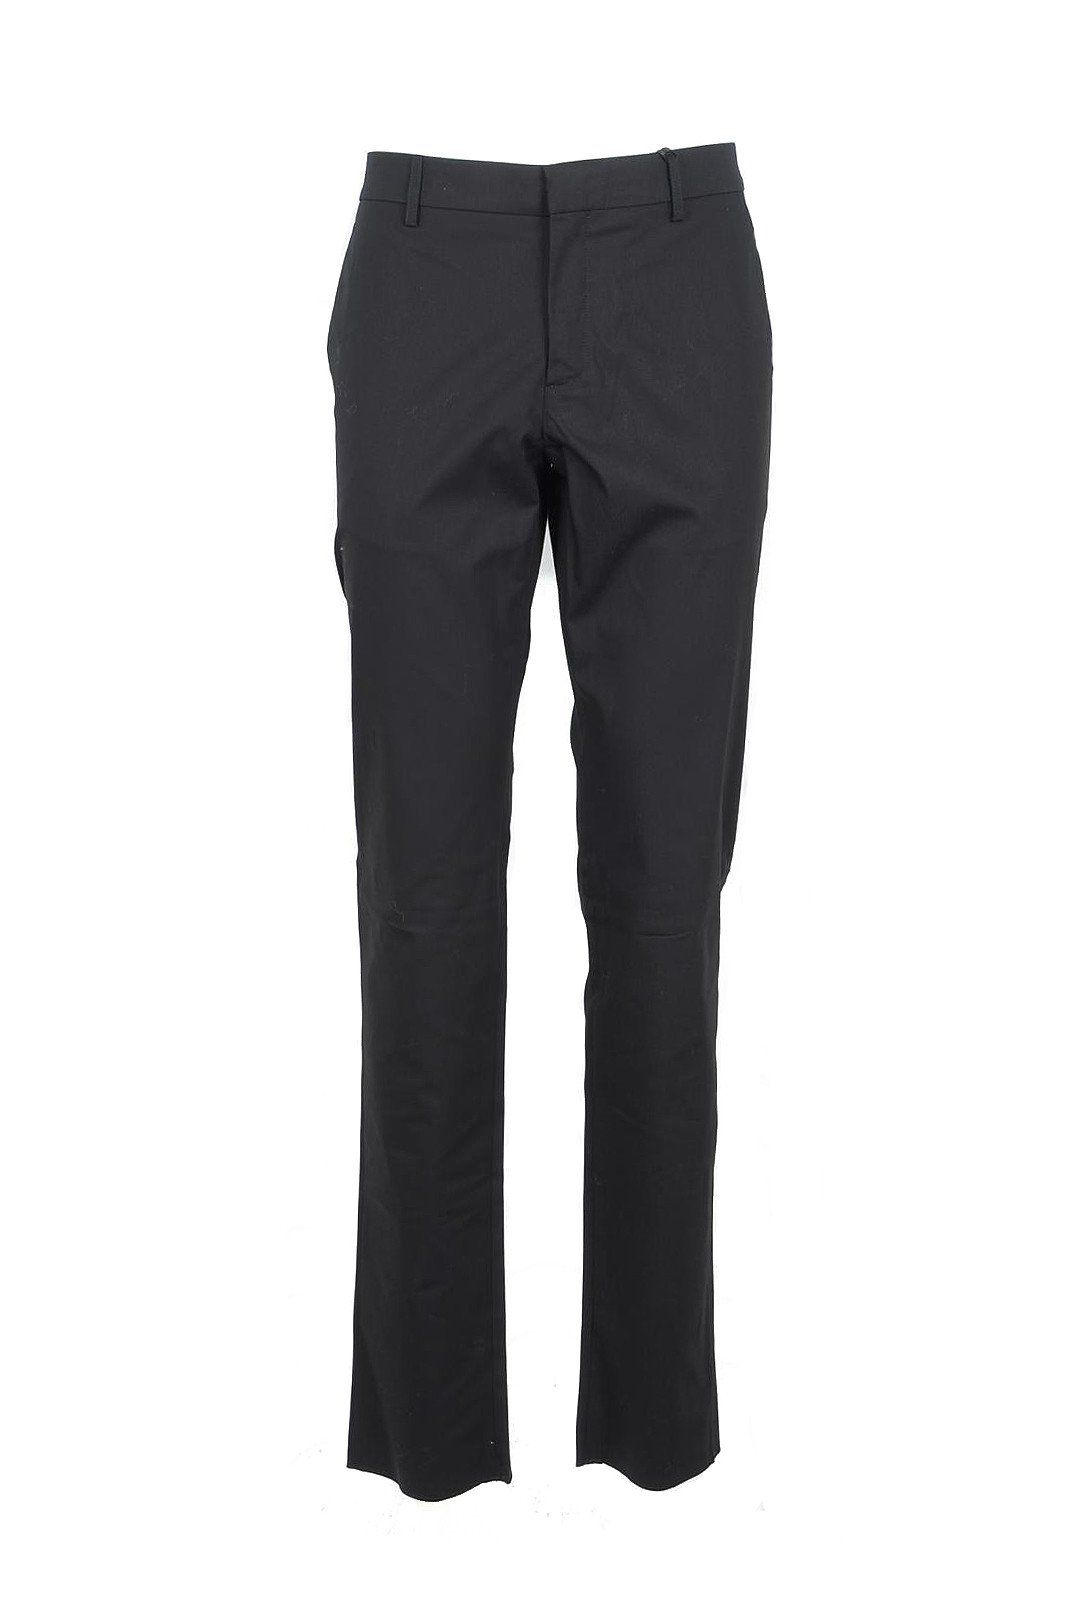 Moschino Couture Men's Trousers In Black